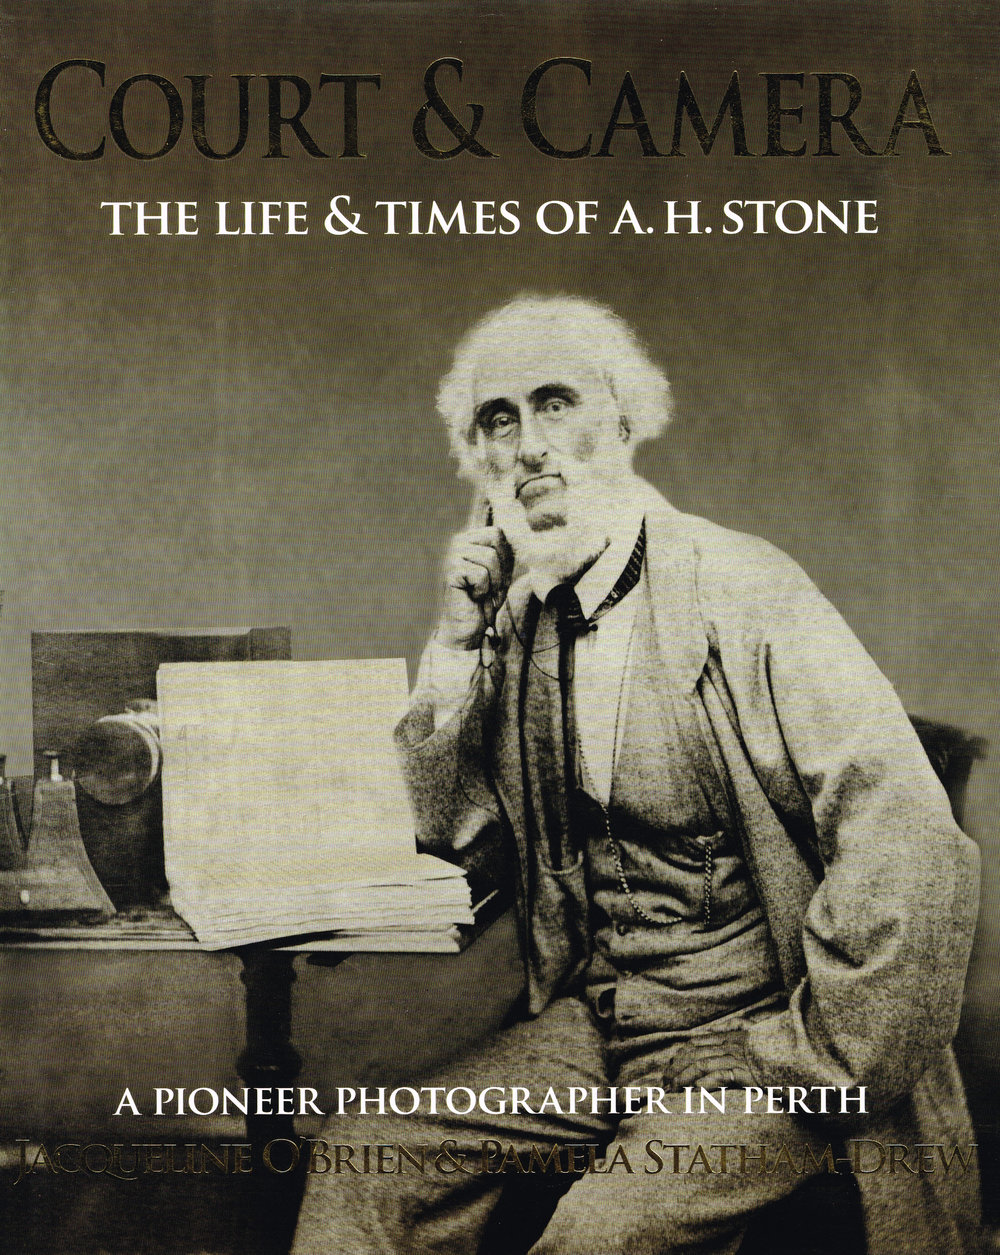 Court & Camera : The life & times of A. H. Stone a pioneer photographer in Perth  Jacqueline O'Brien & Pamela Statham-Drew